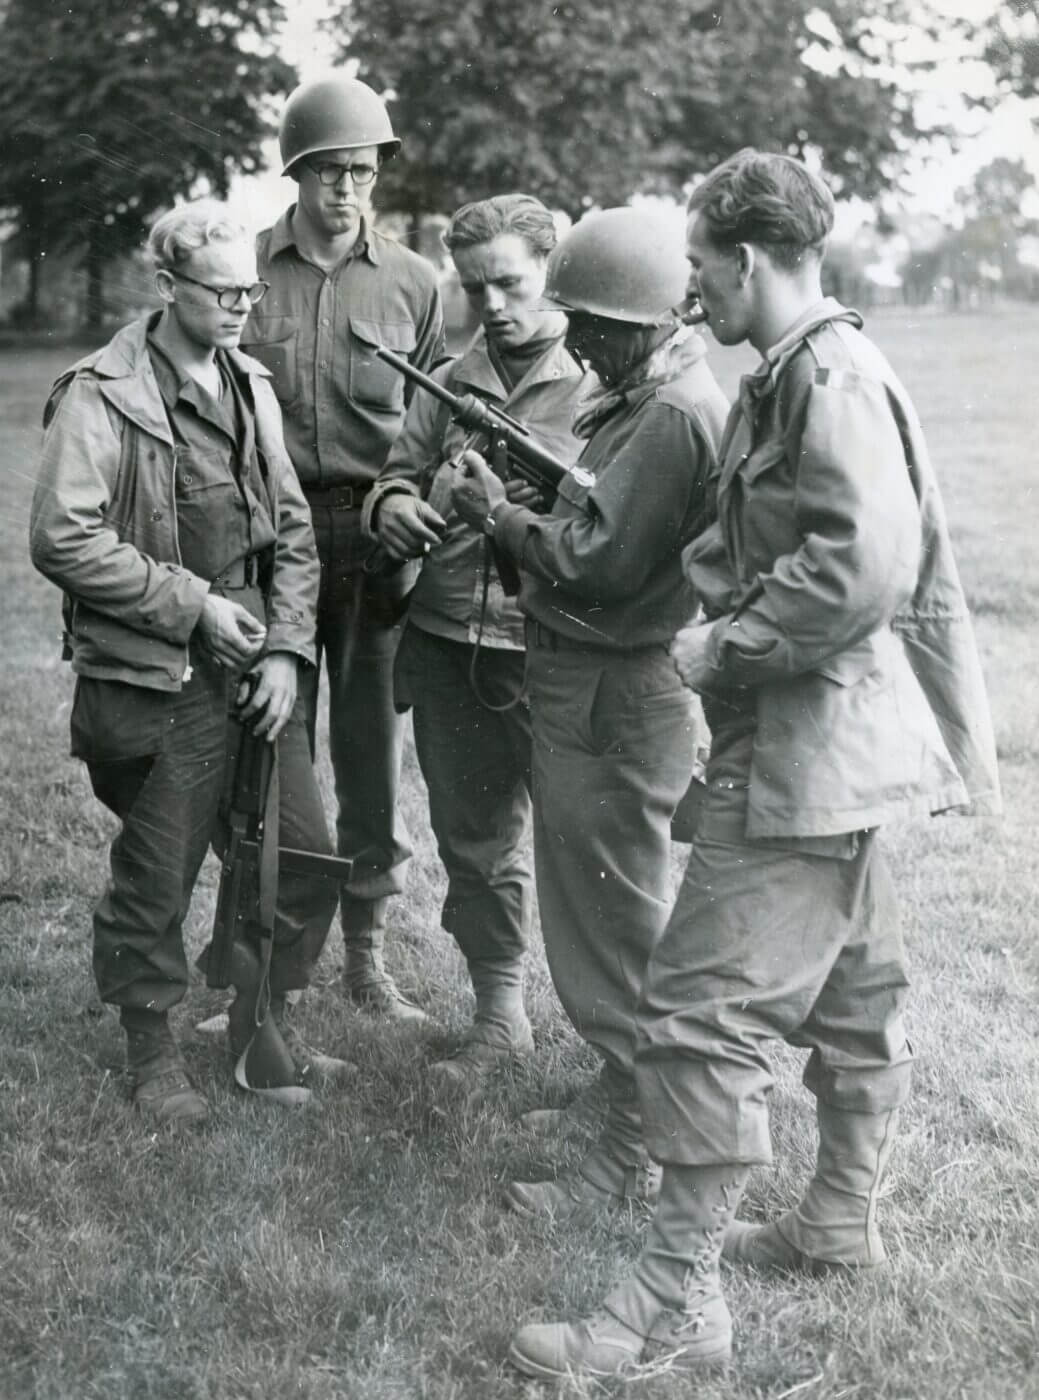 Belgian troops with the M3 Grease Gun in WWII